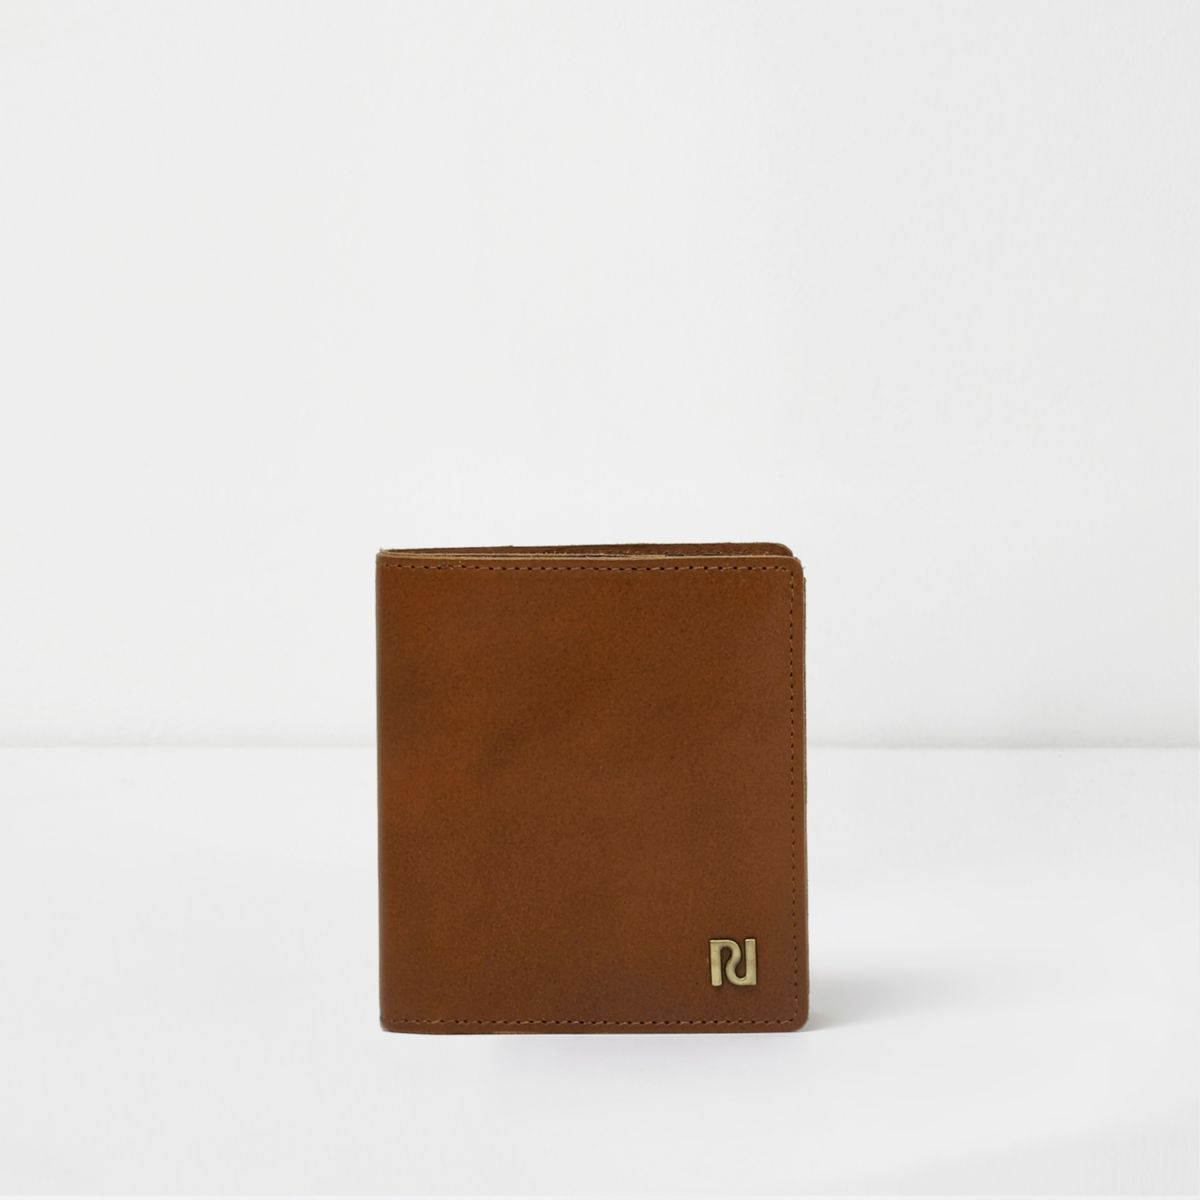 Tan brown trifold leather wallet